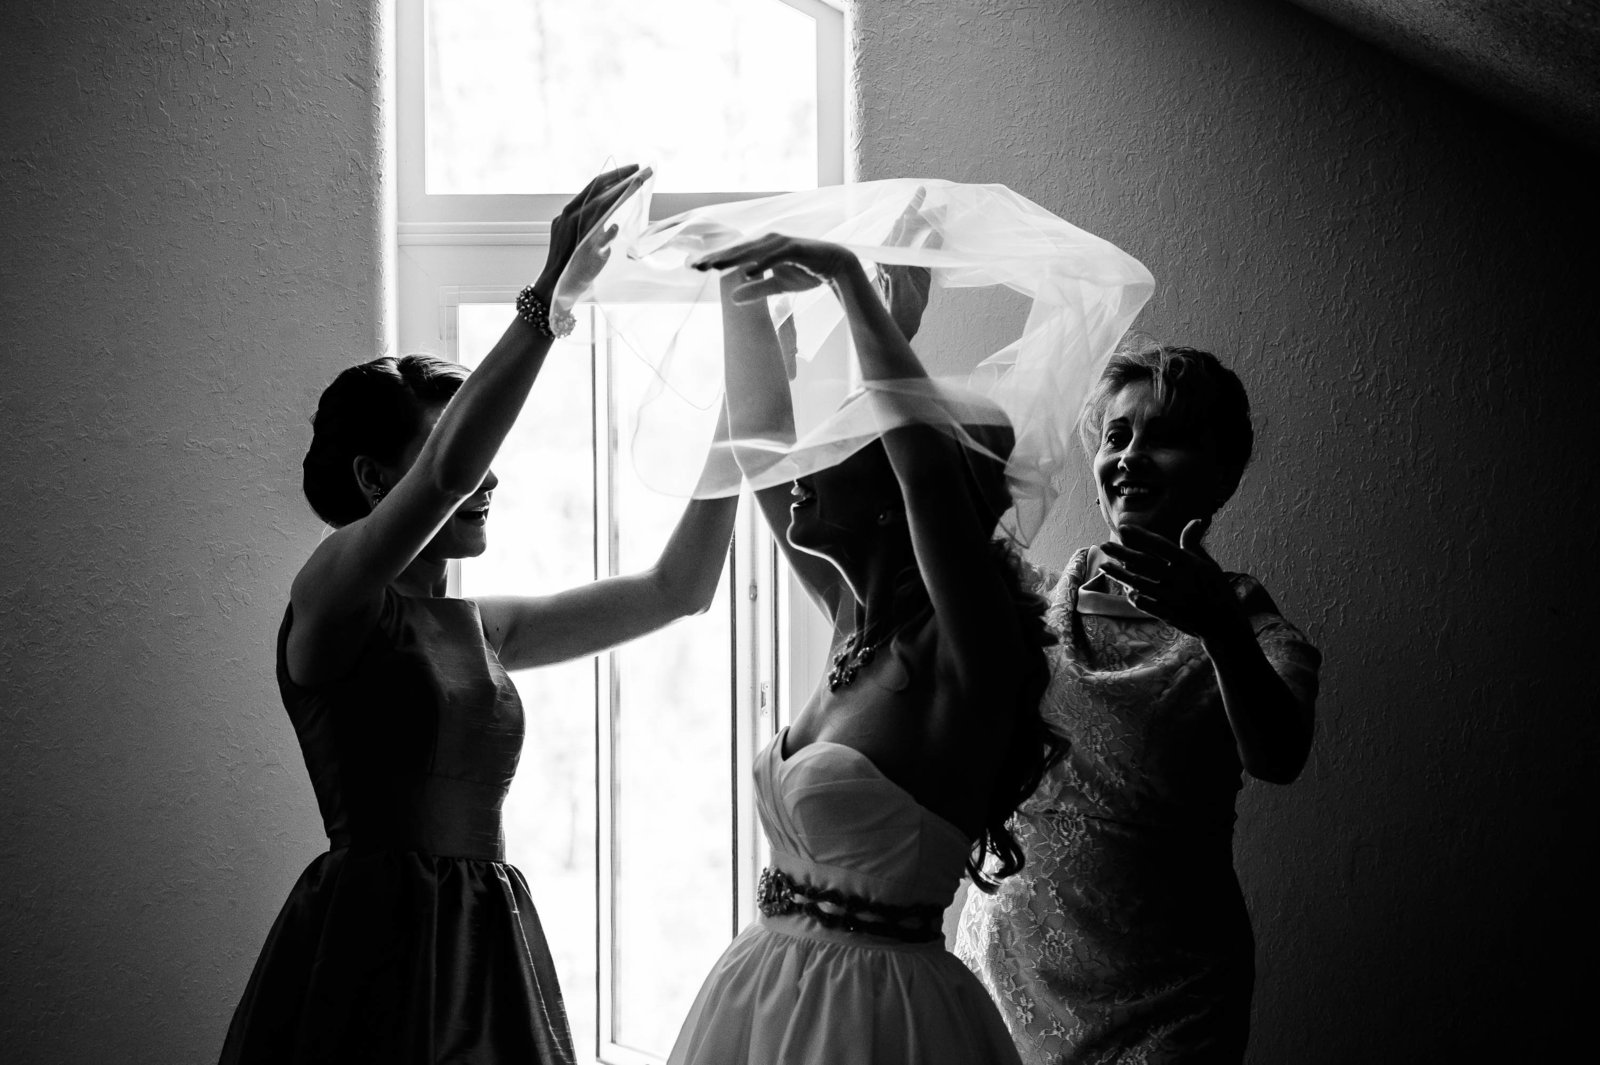 197-El-paso-wedding-photographer-El Paso Wedding Photographer_M37